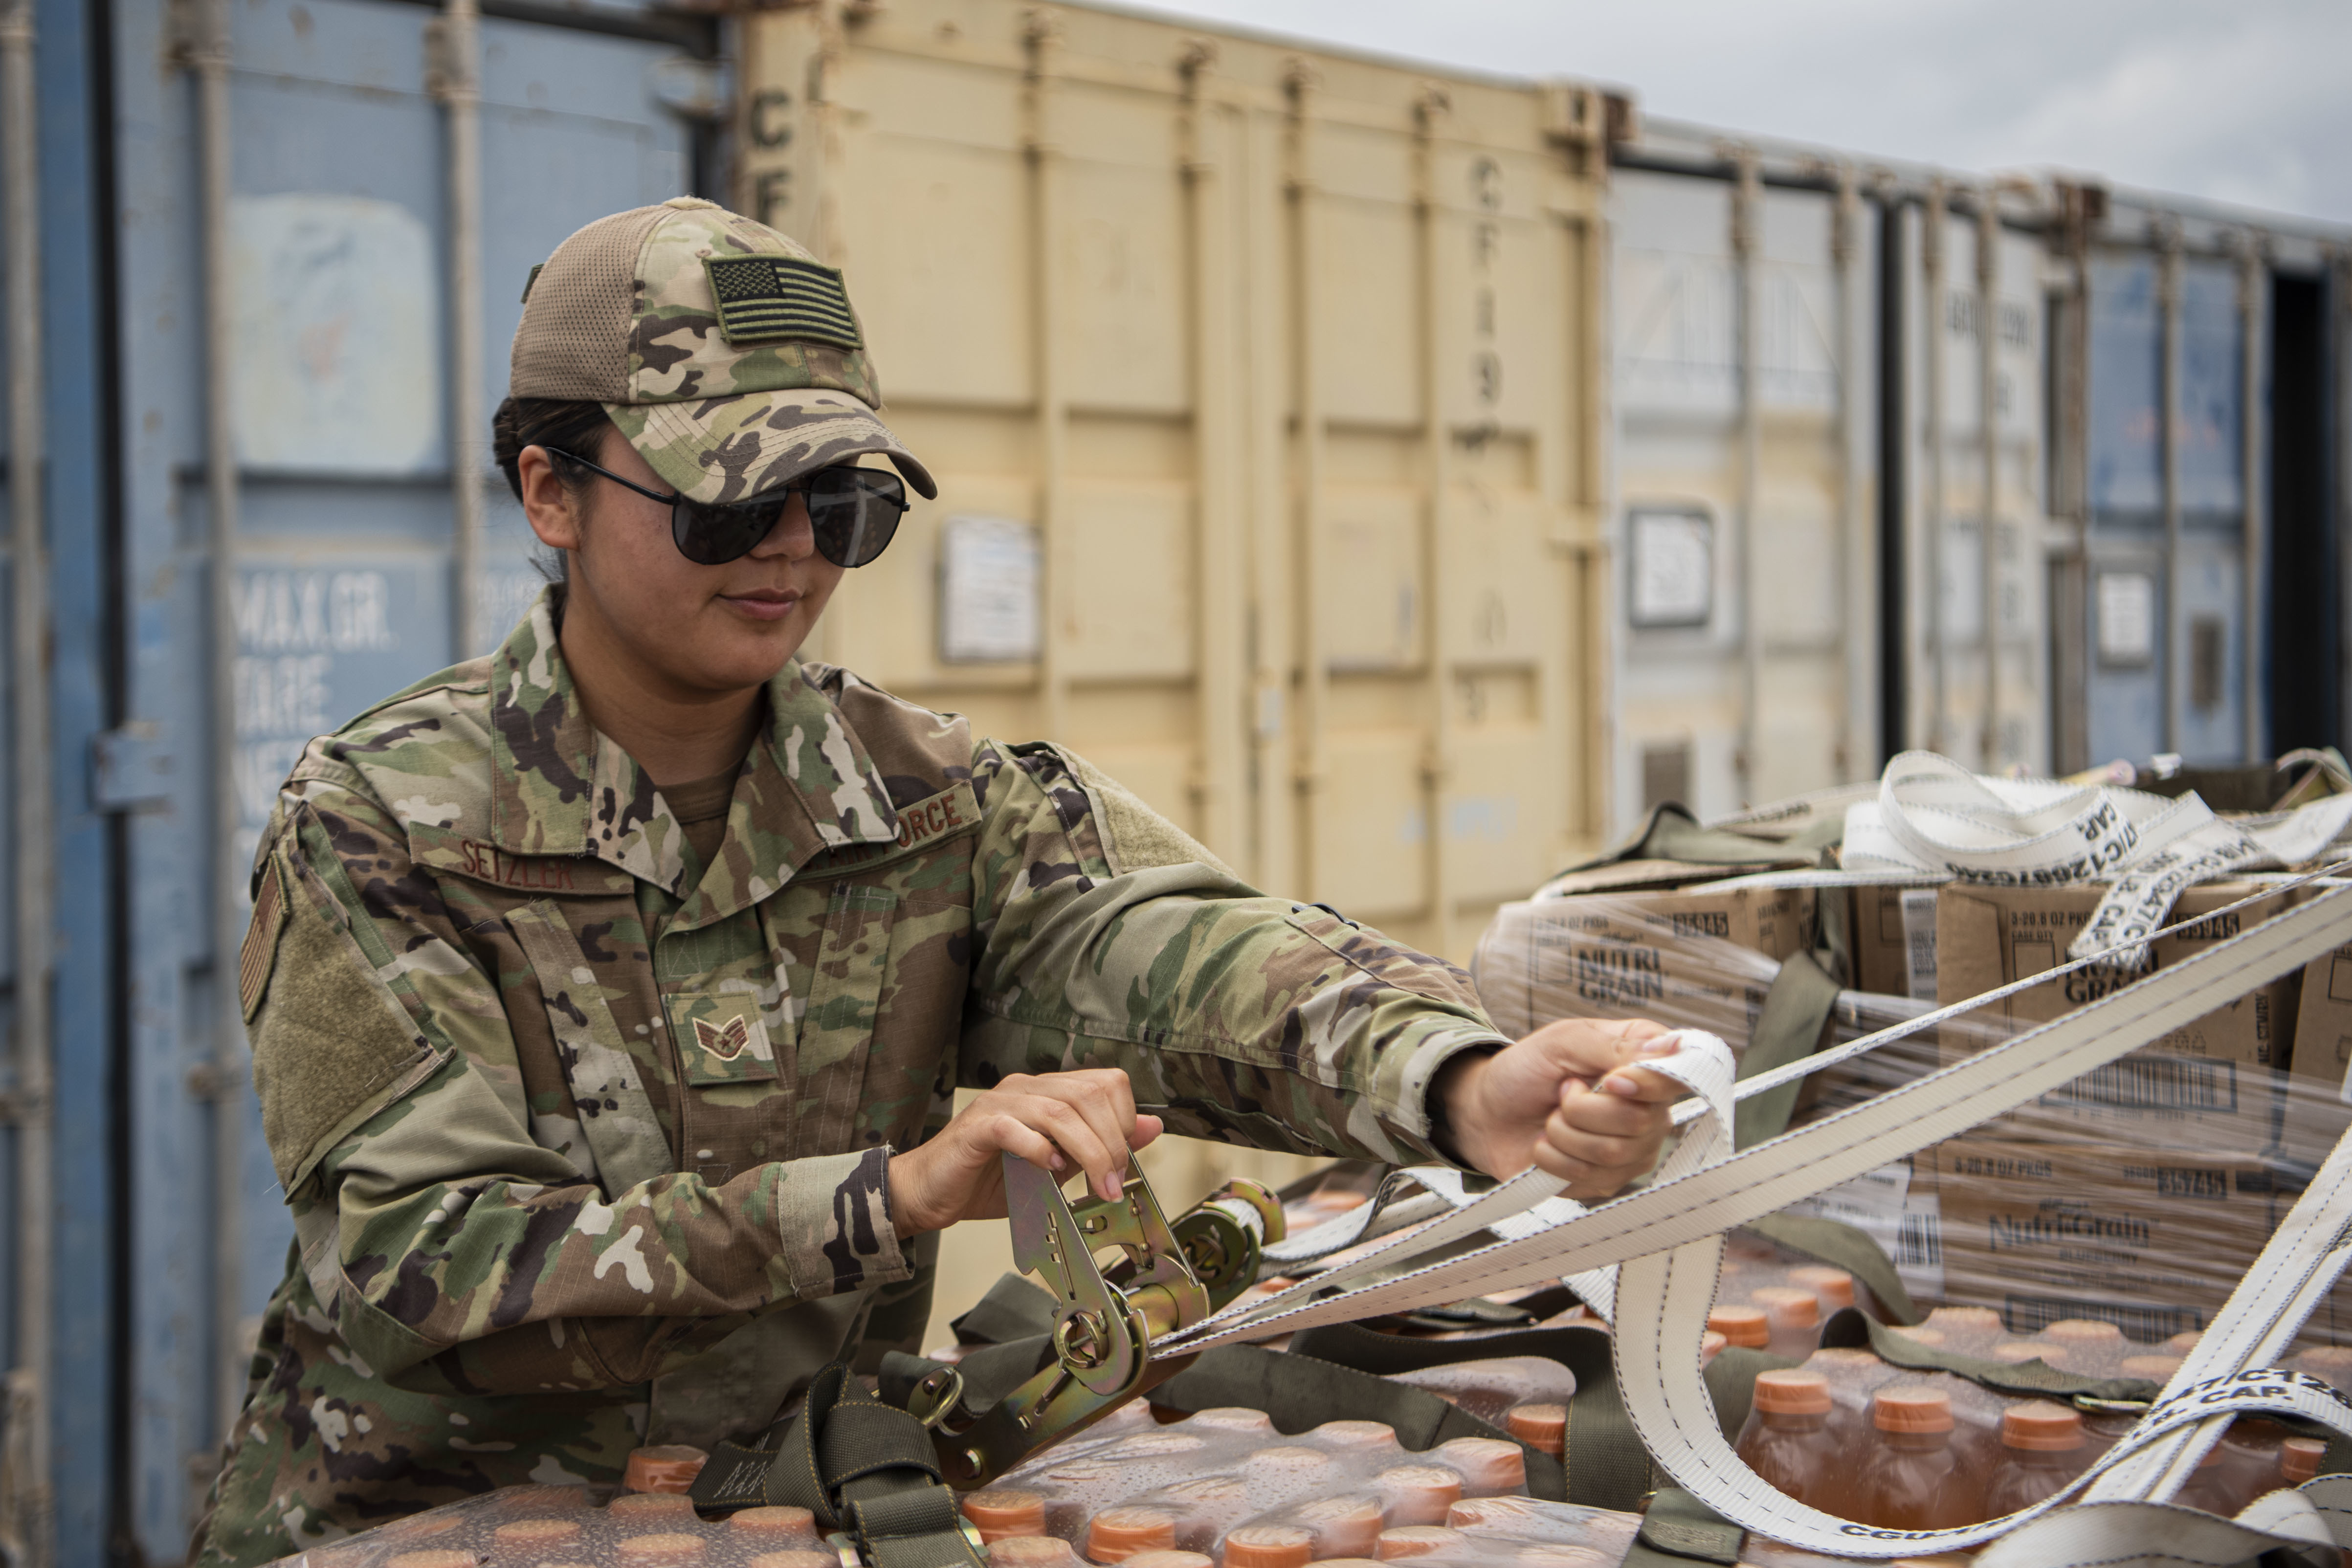 U.S. Air Force Staff Sgt. Andrea Setzler, air movements noncommissioned officer in charge, Combined Joint Task Force-Horn of Africa (CJTF-HOA), secures cargo for transport at Camp Lemonnier, Djibouti, Feb. 4, 2020. Setzler manages the first step in transporting cargo throughout the CJTF-HOA area of operations, ensuring U.S. forces in the region have the supplies needed to maintain stability in East Africa. (U.S. Air Force photo by Senior Airman Gage Daniel)